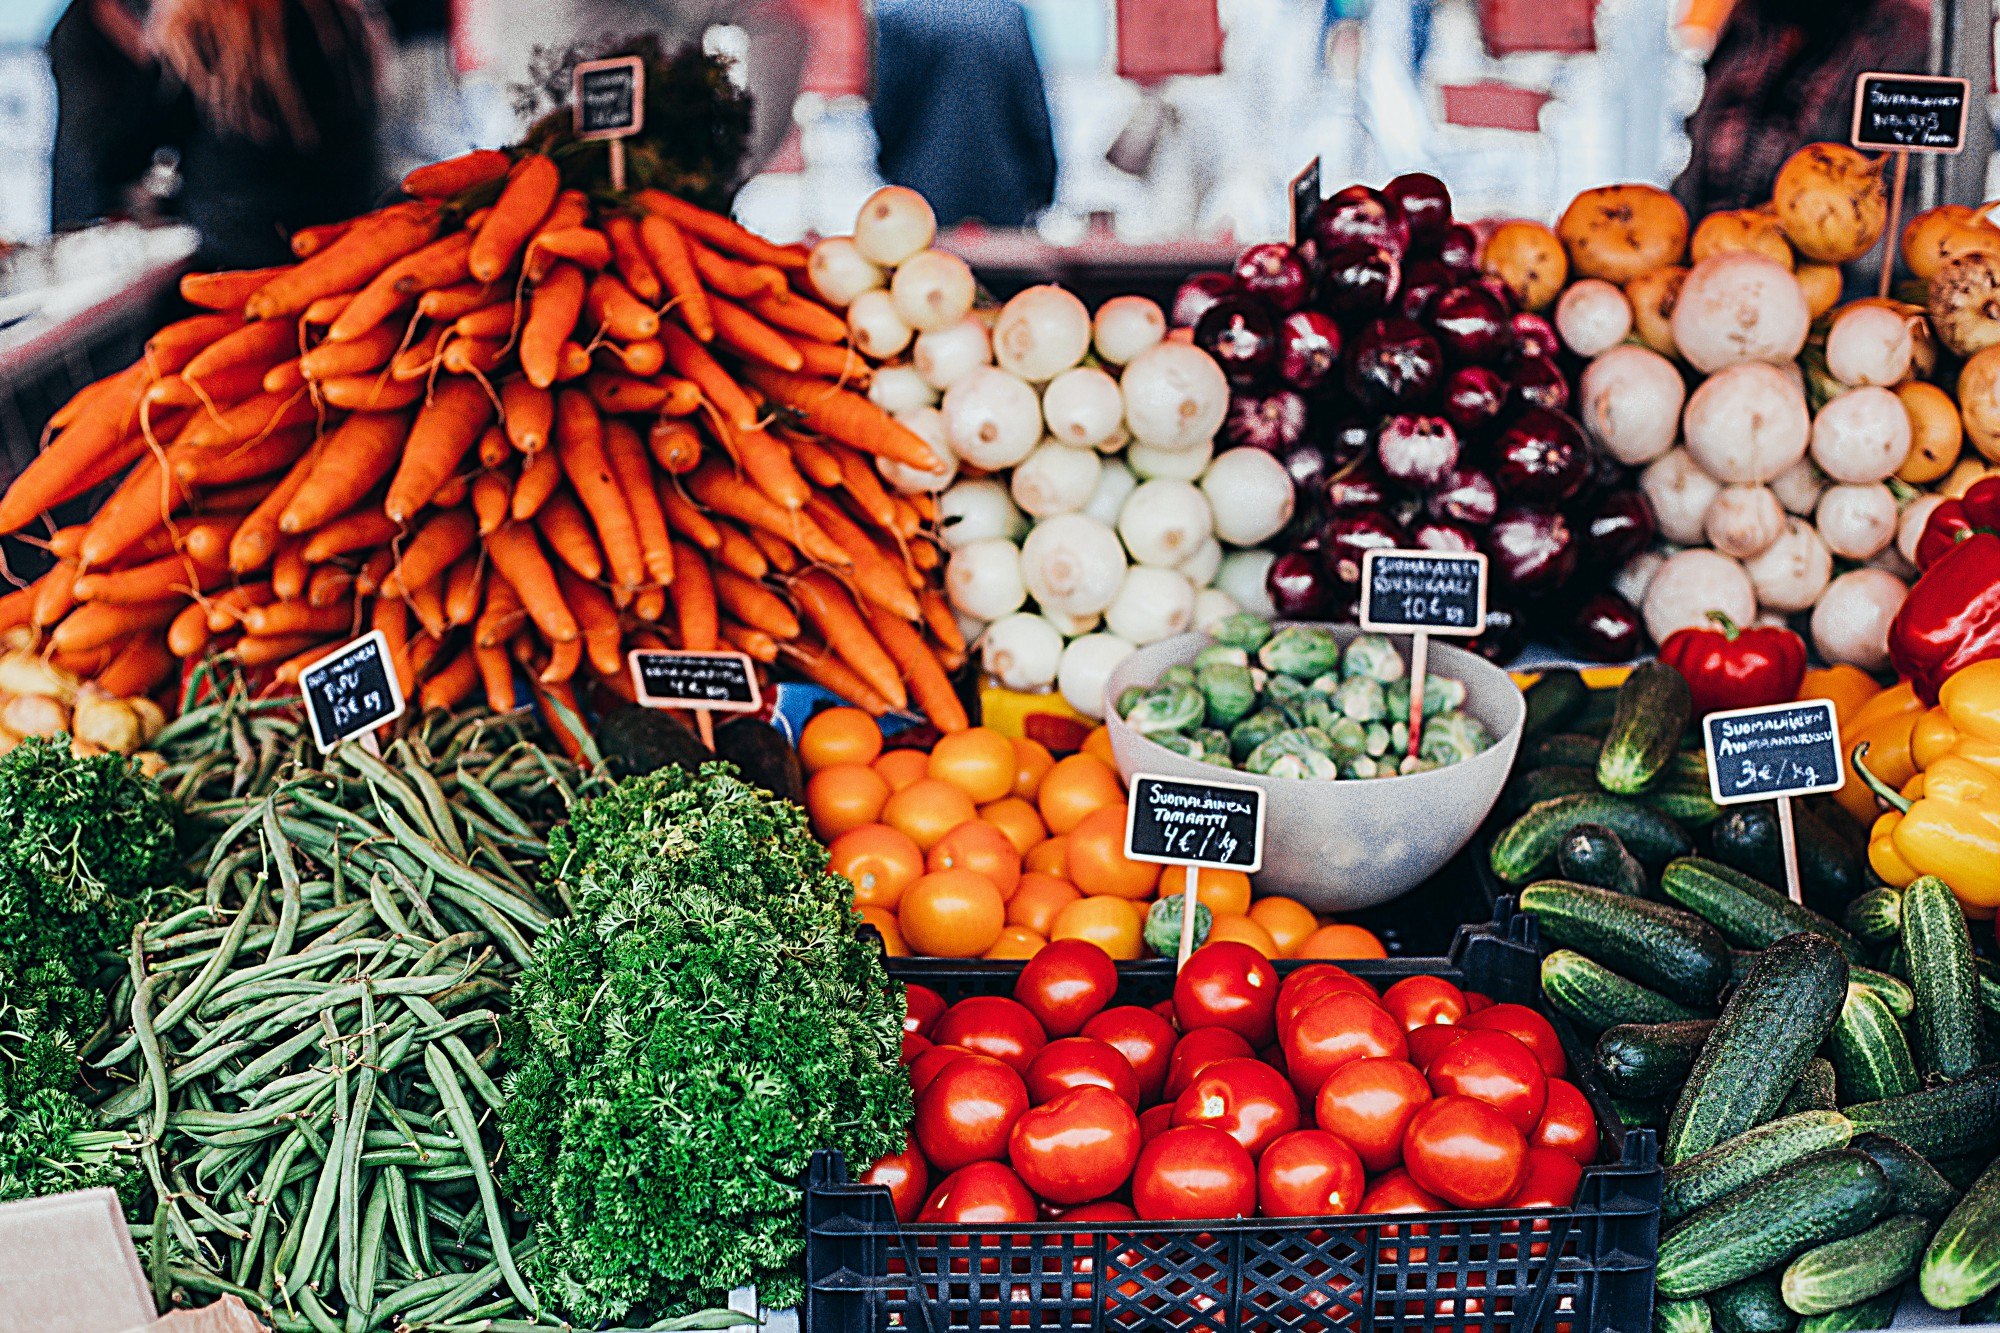 Fruits and vegetables at the supermarket